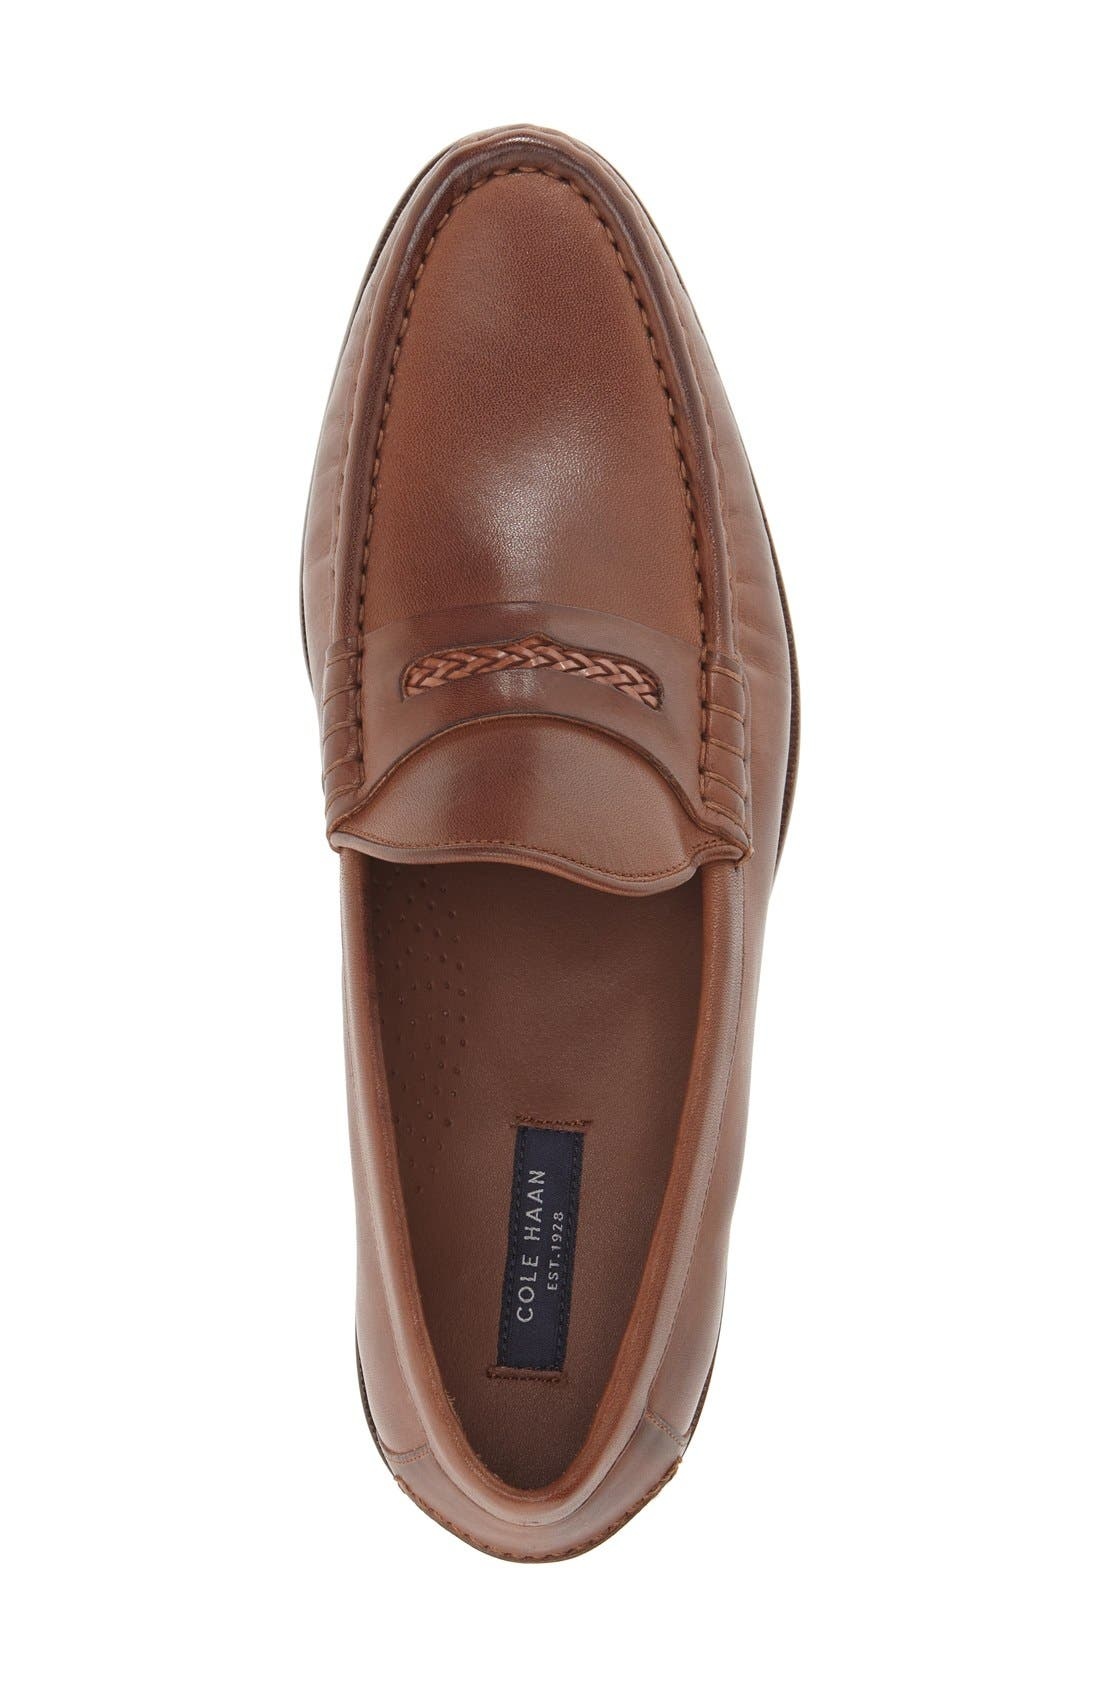 'Pinch Gotham' Penny Loafer,                             Alternate thumbnail 9, color,